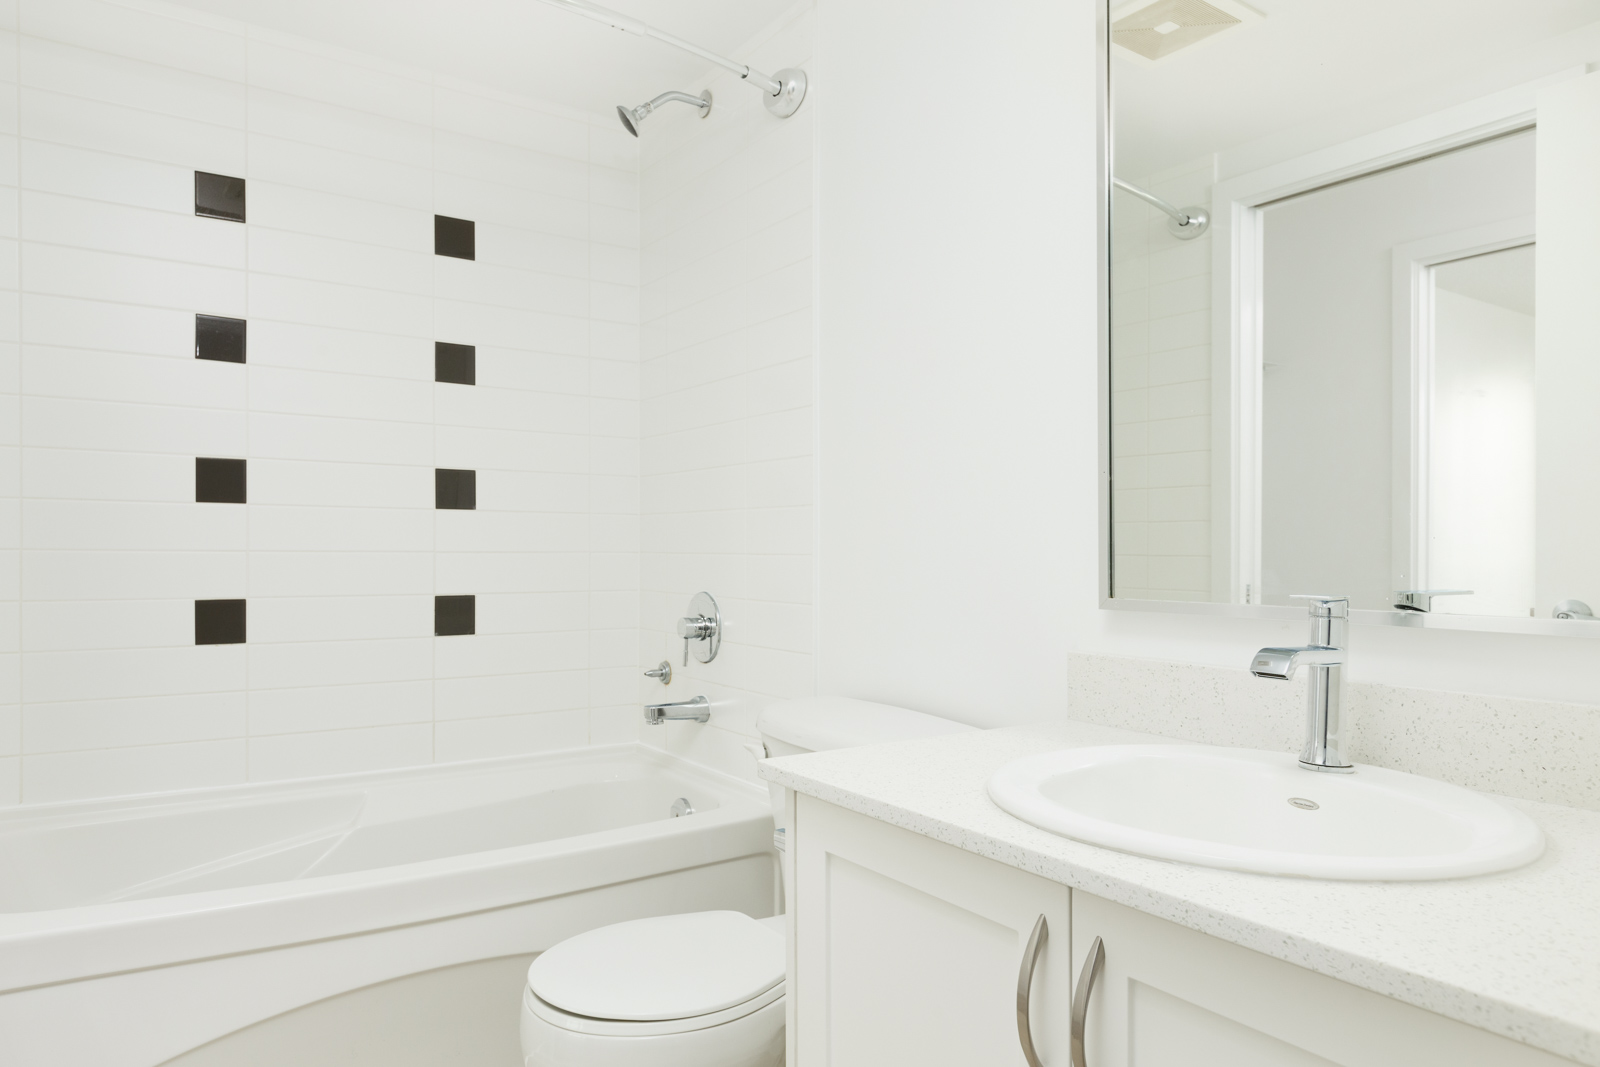 Bathroom inside Downtown Vancouver rental condo.